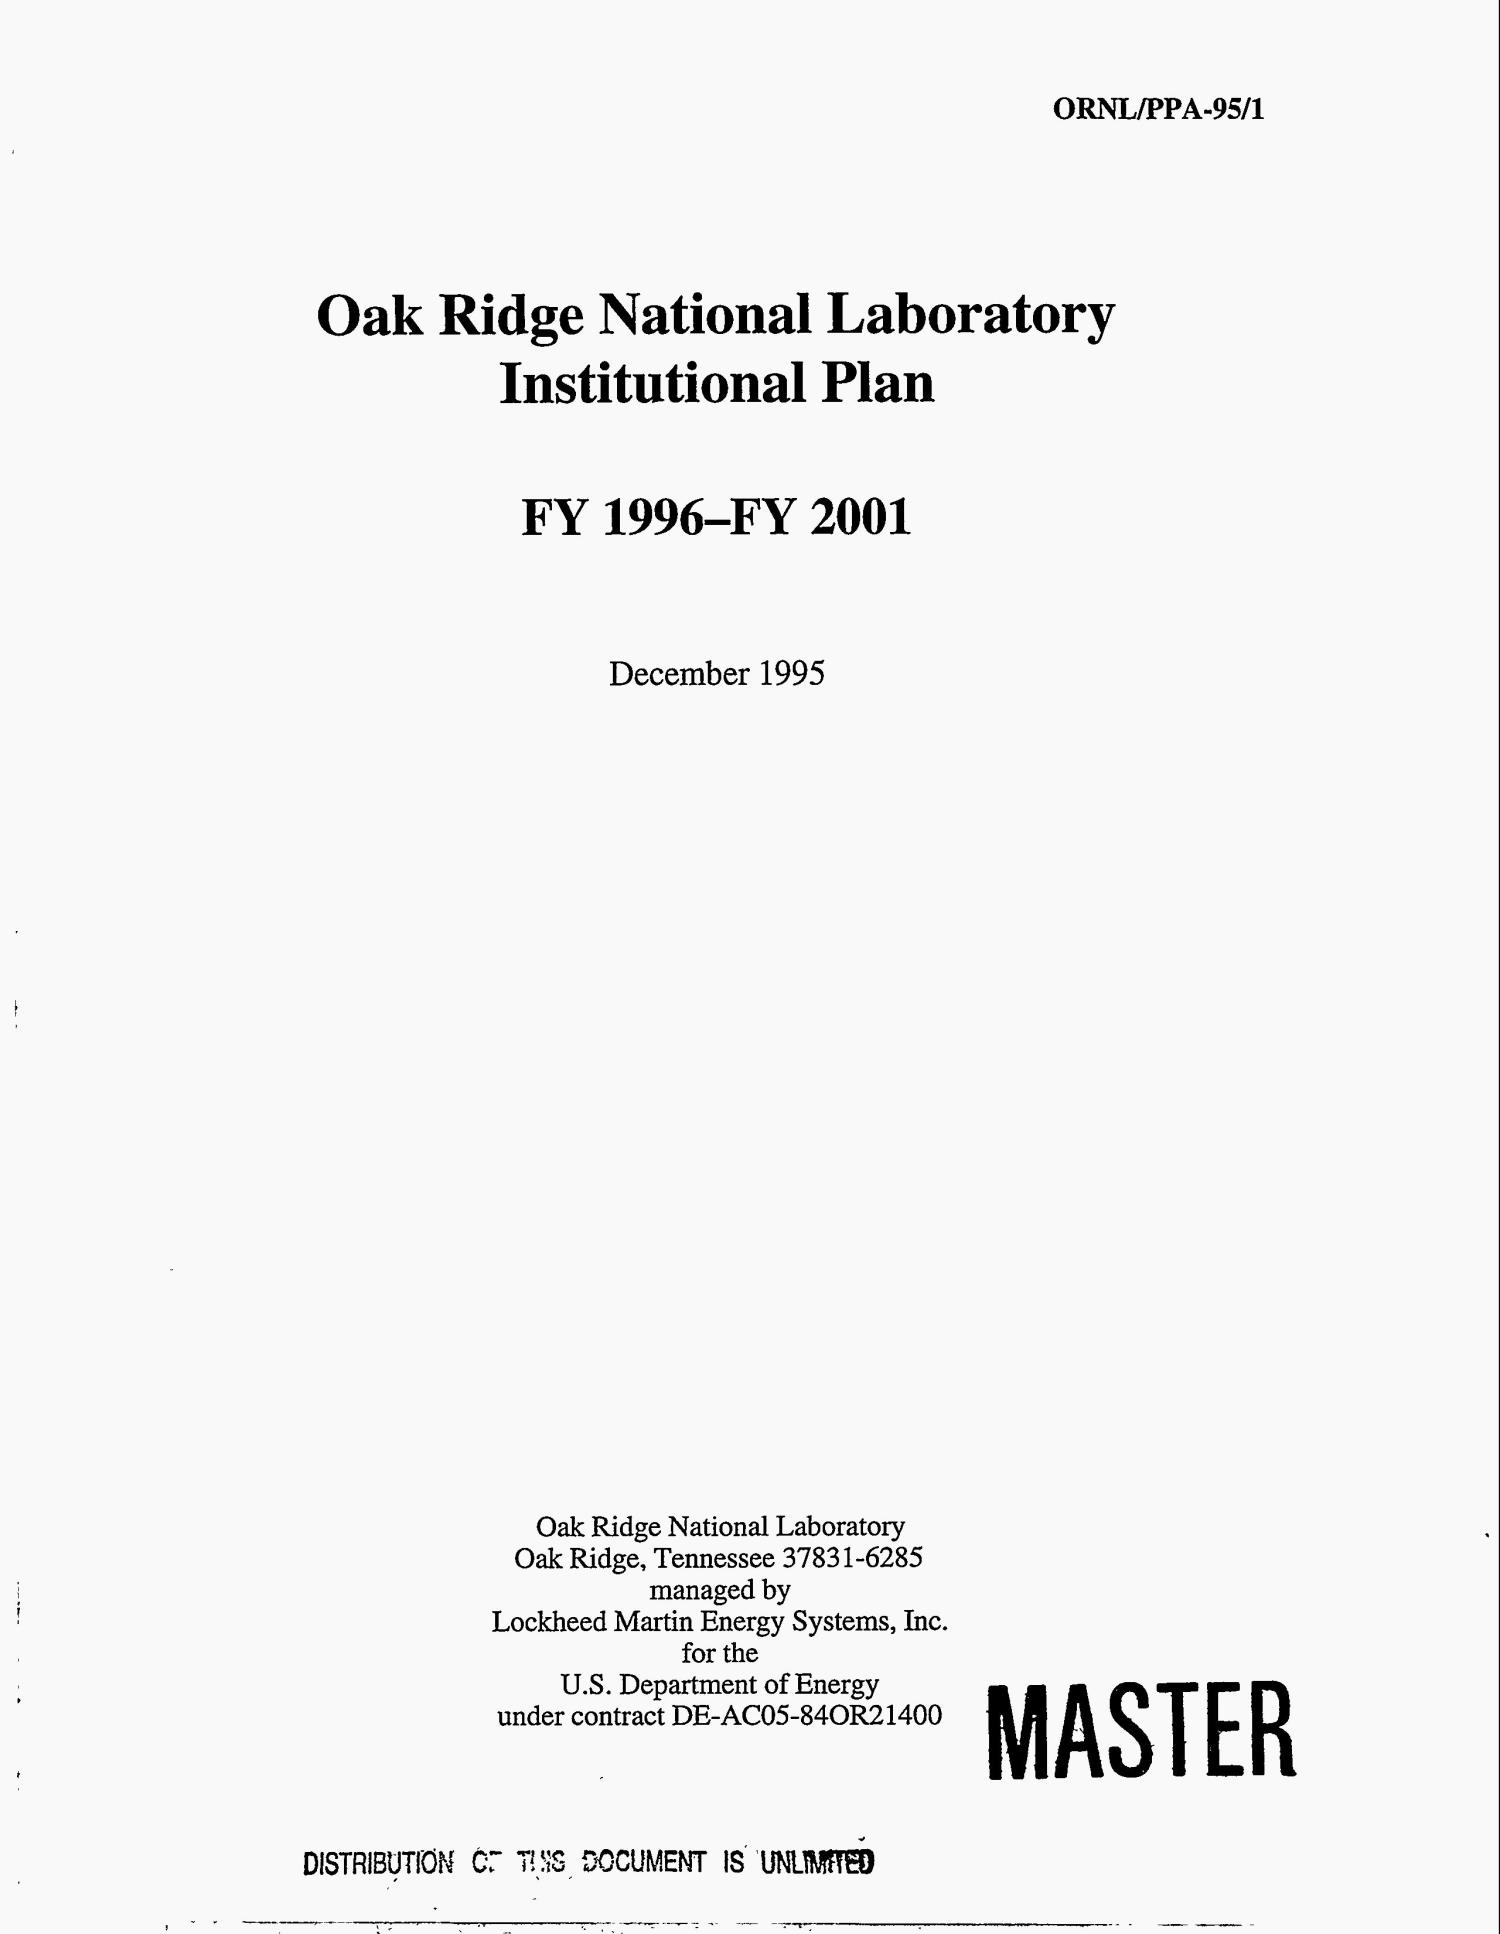 Oak Ridge National Laboratory institutional plan, FY 1996--FY 2001                                                                                                      [Sequence #]: 1 of 217